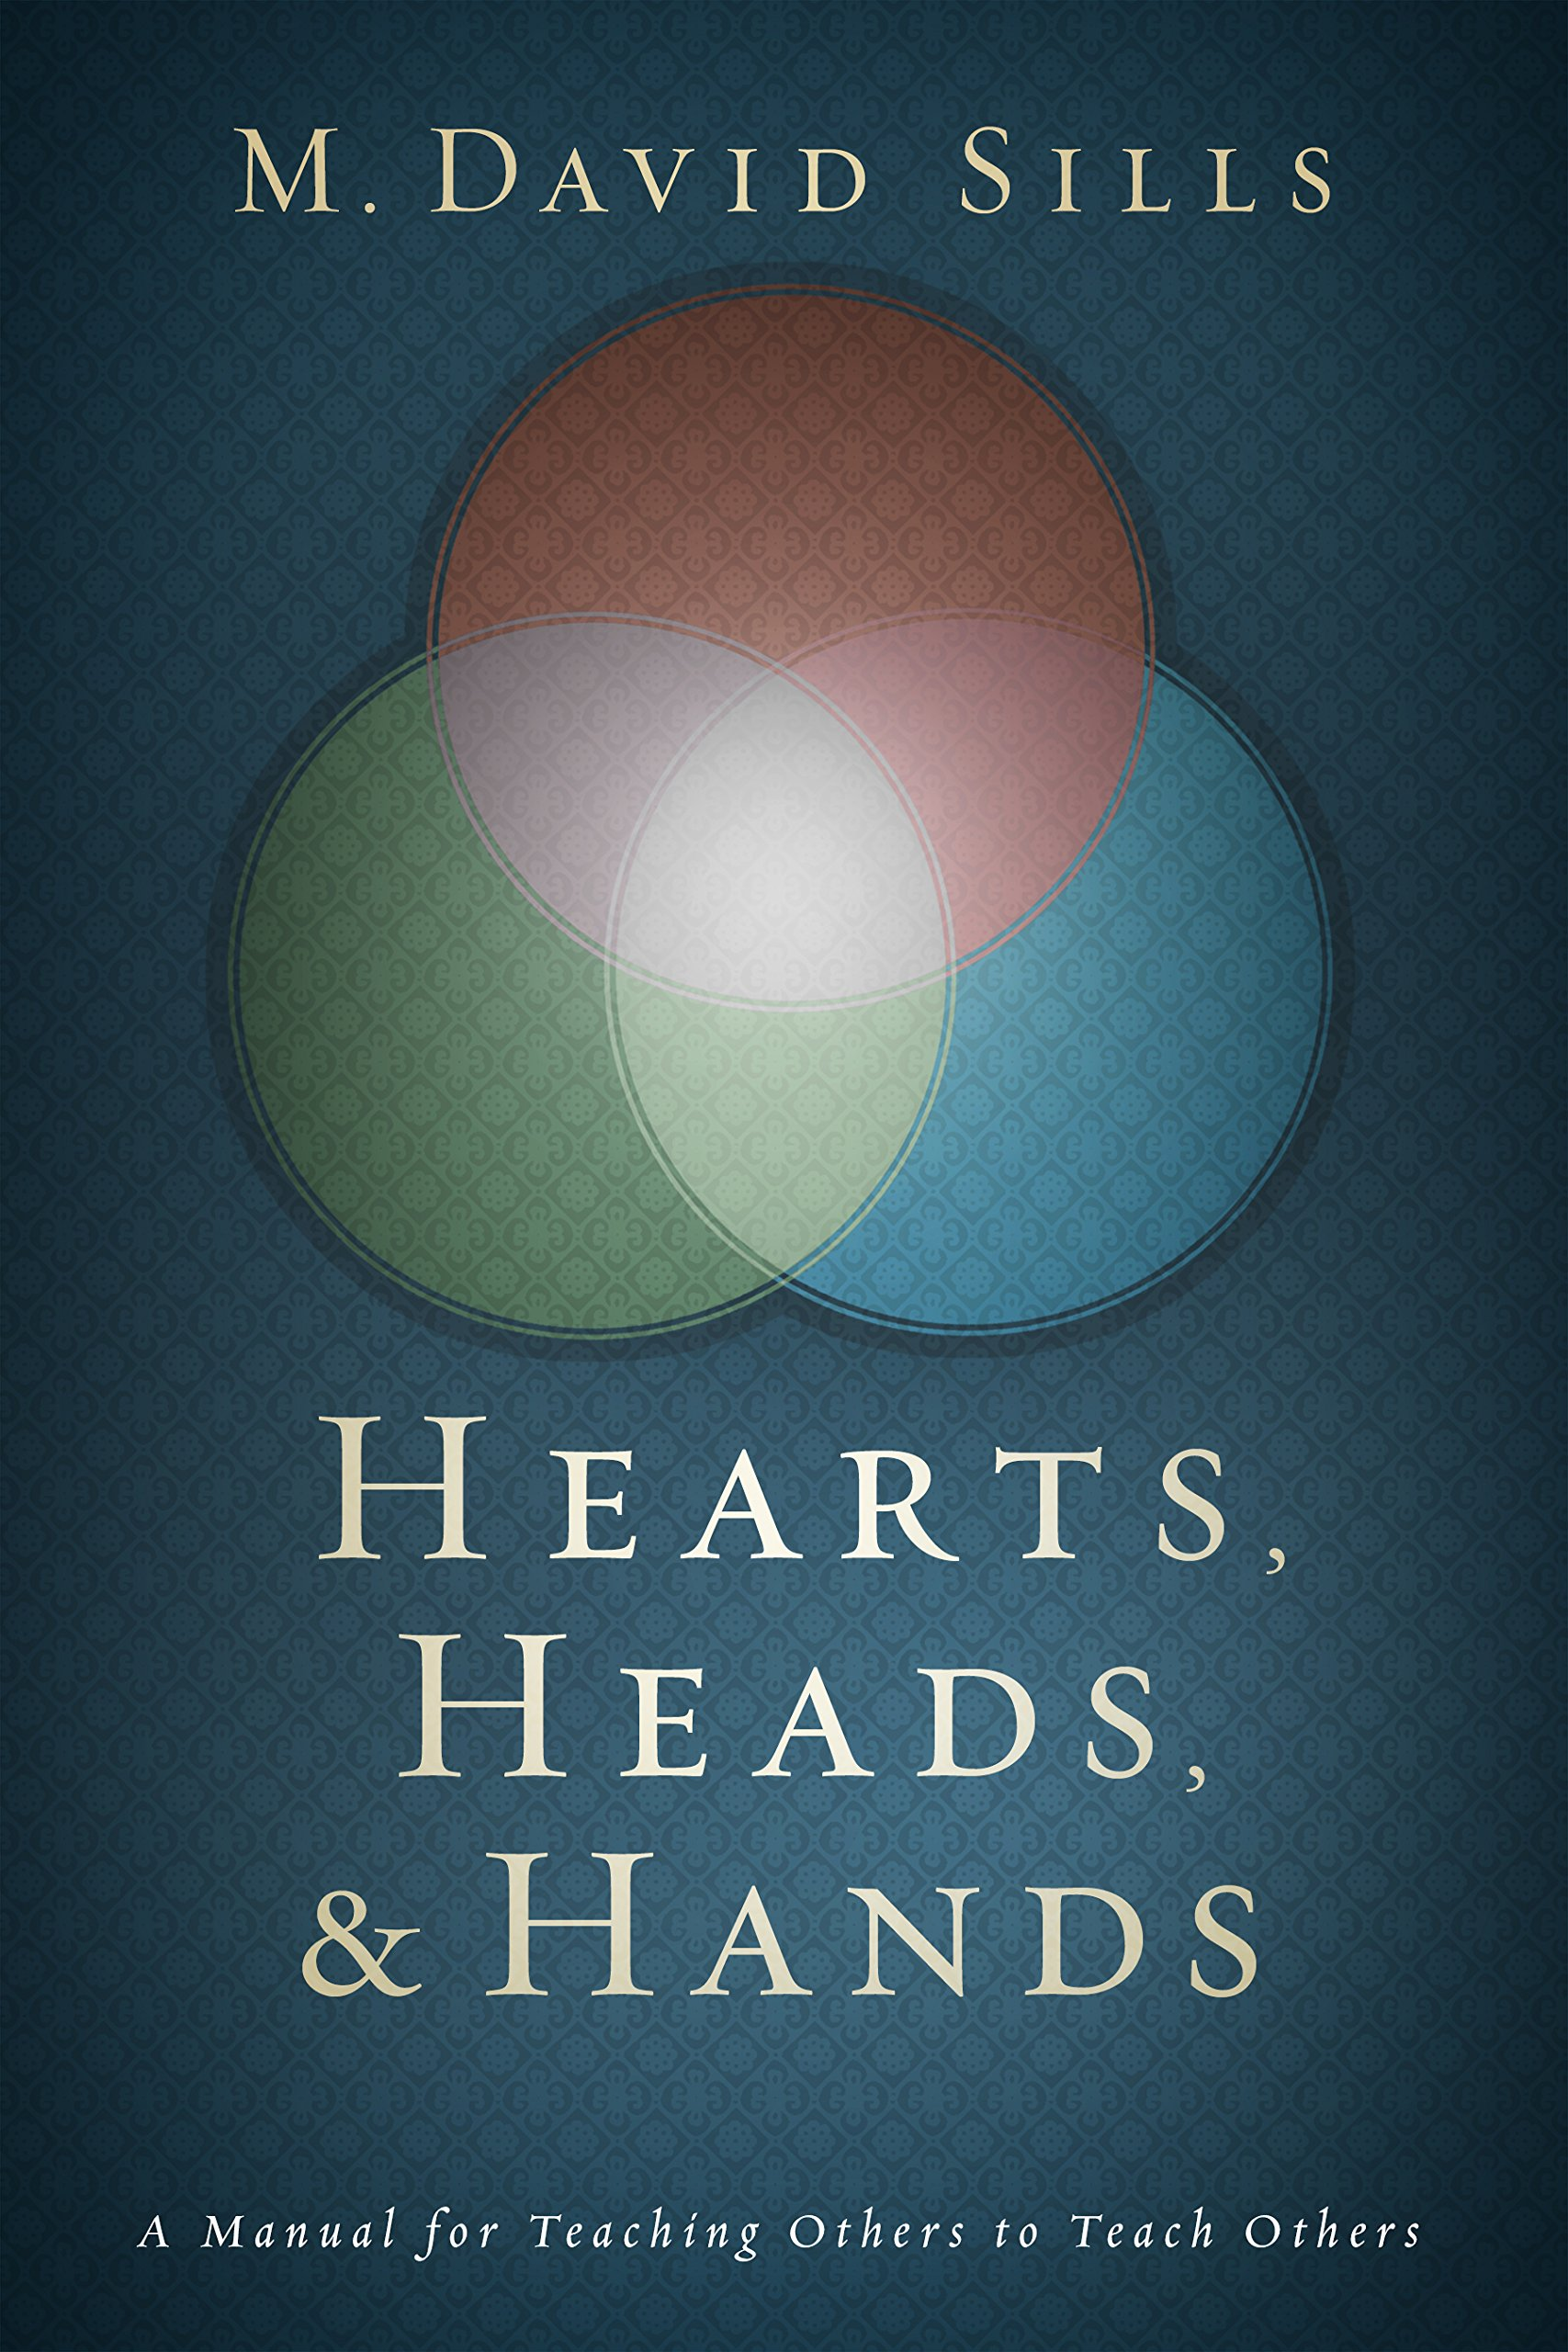 Hearts, Heads, and Hands: A Manual for Teaching Others to Teach Others: M.  David Sills: 9781433689642: Amazon.com: Books